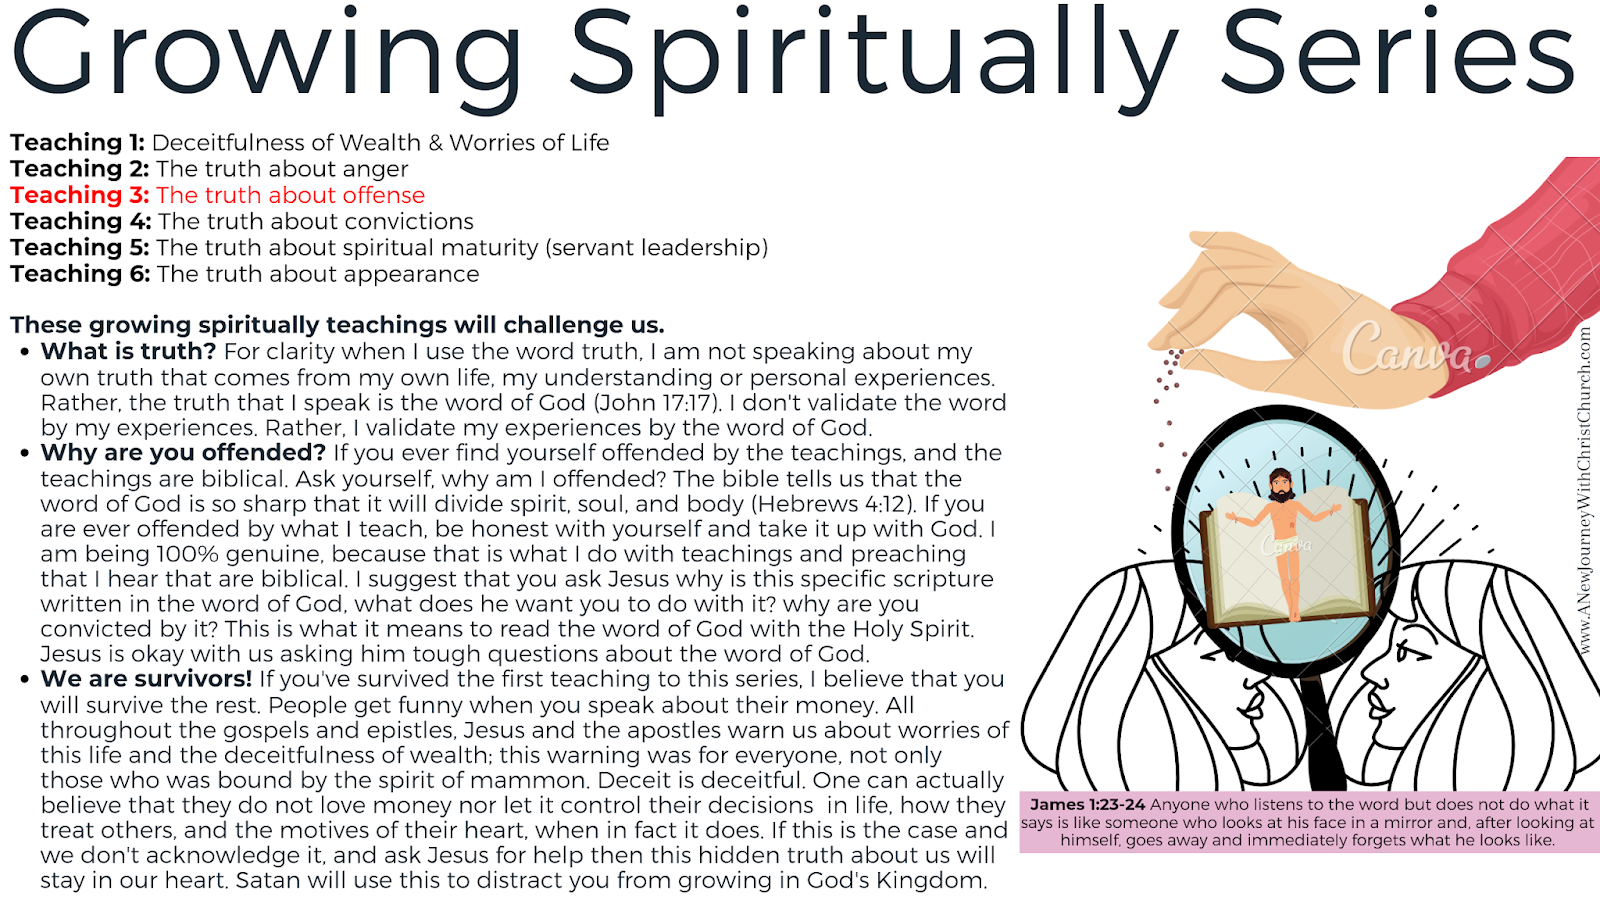 Growing Spiritually 3 of 6: The Truth About Offense